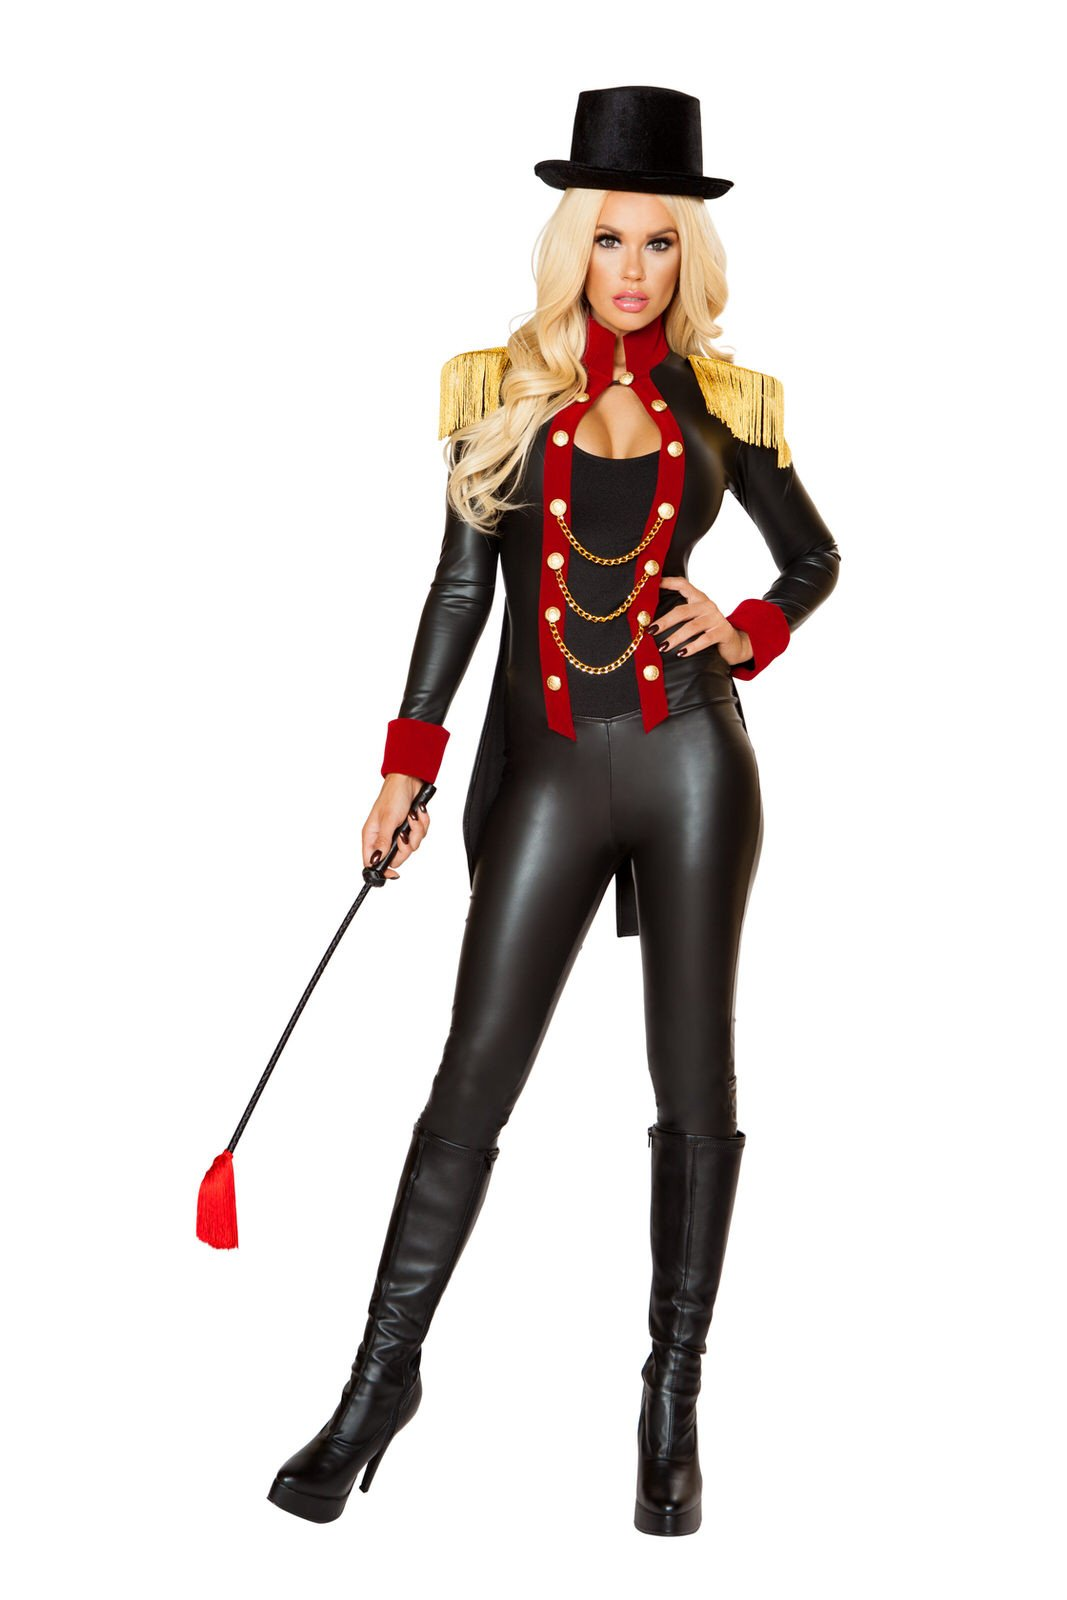 Buy 2pc Sassy Ringleader from Rave Fix for $97.50 with Same Day Shipping Designed by Roma Costume 4822-AS-S